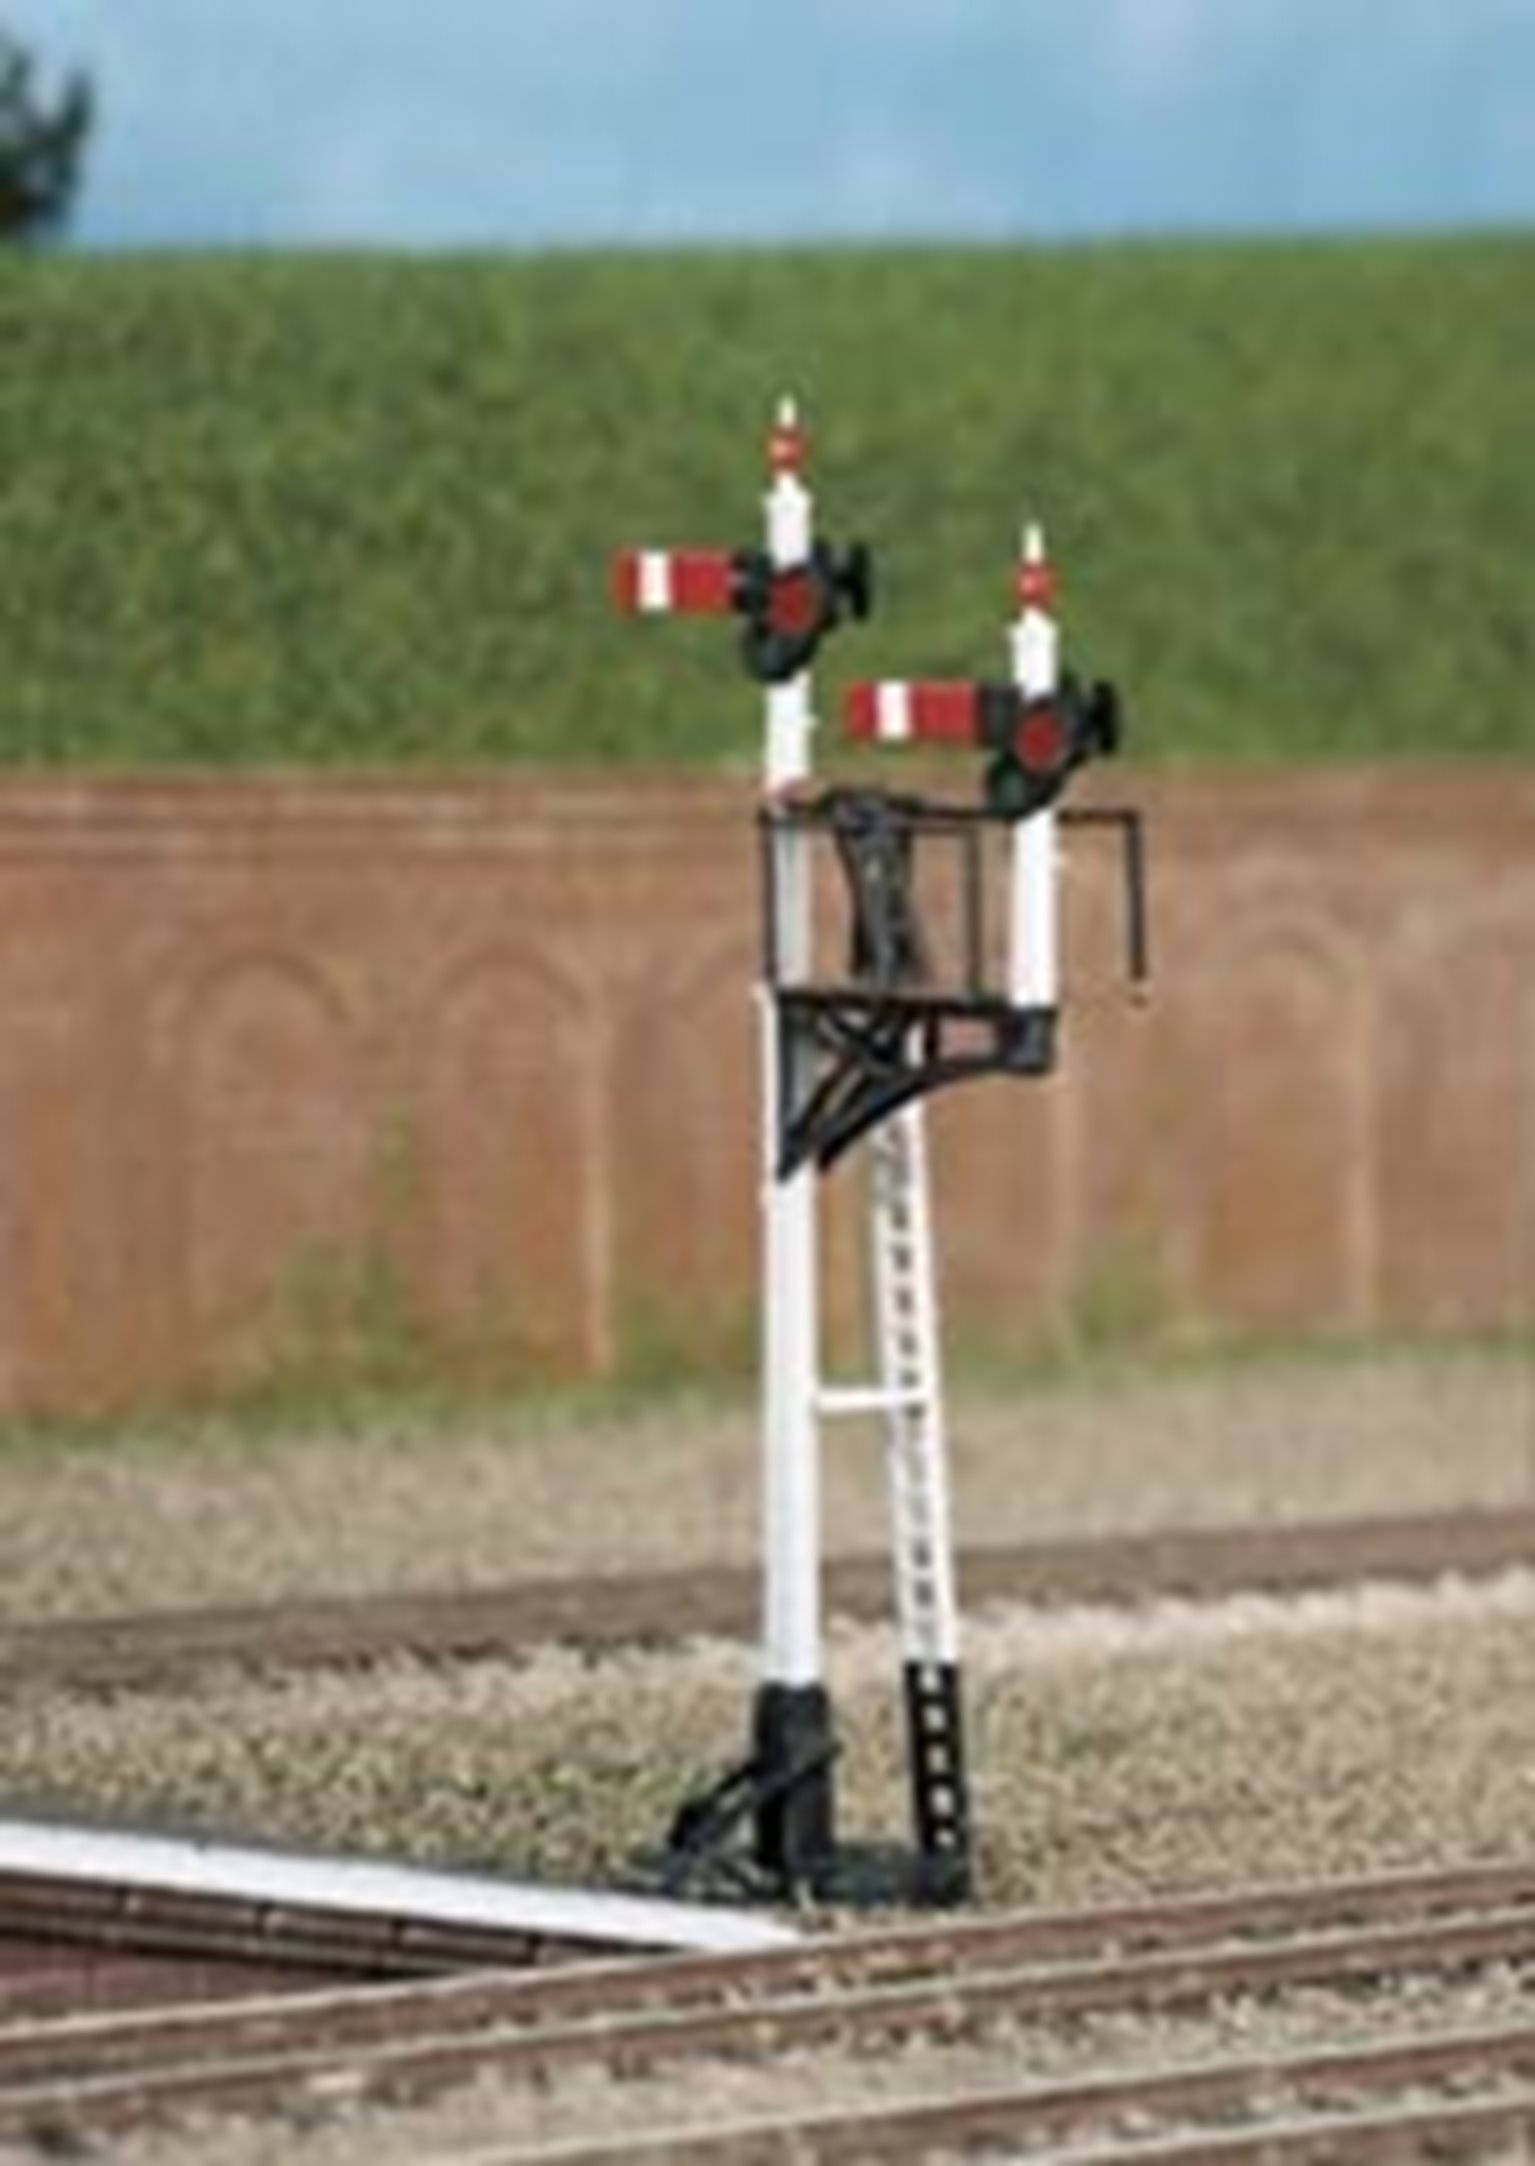 Lower Quad. Junction or Bracket (Home or District) Signal Kit